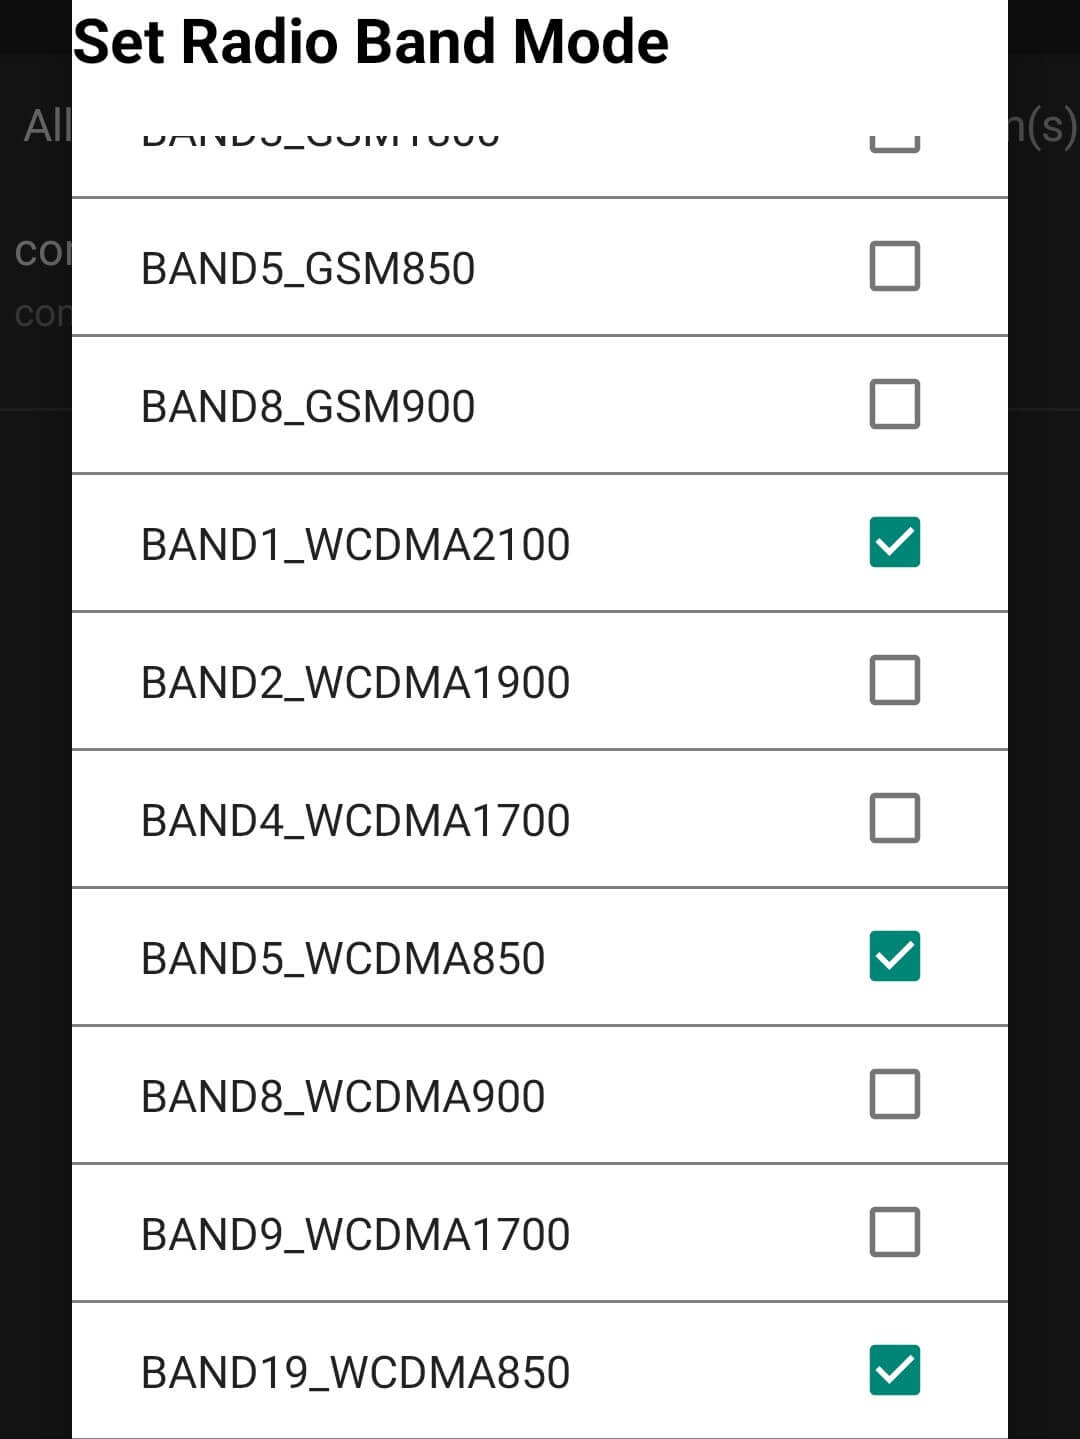 oneplus 8t Set radio Band Mode